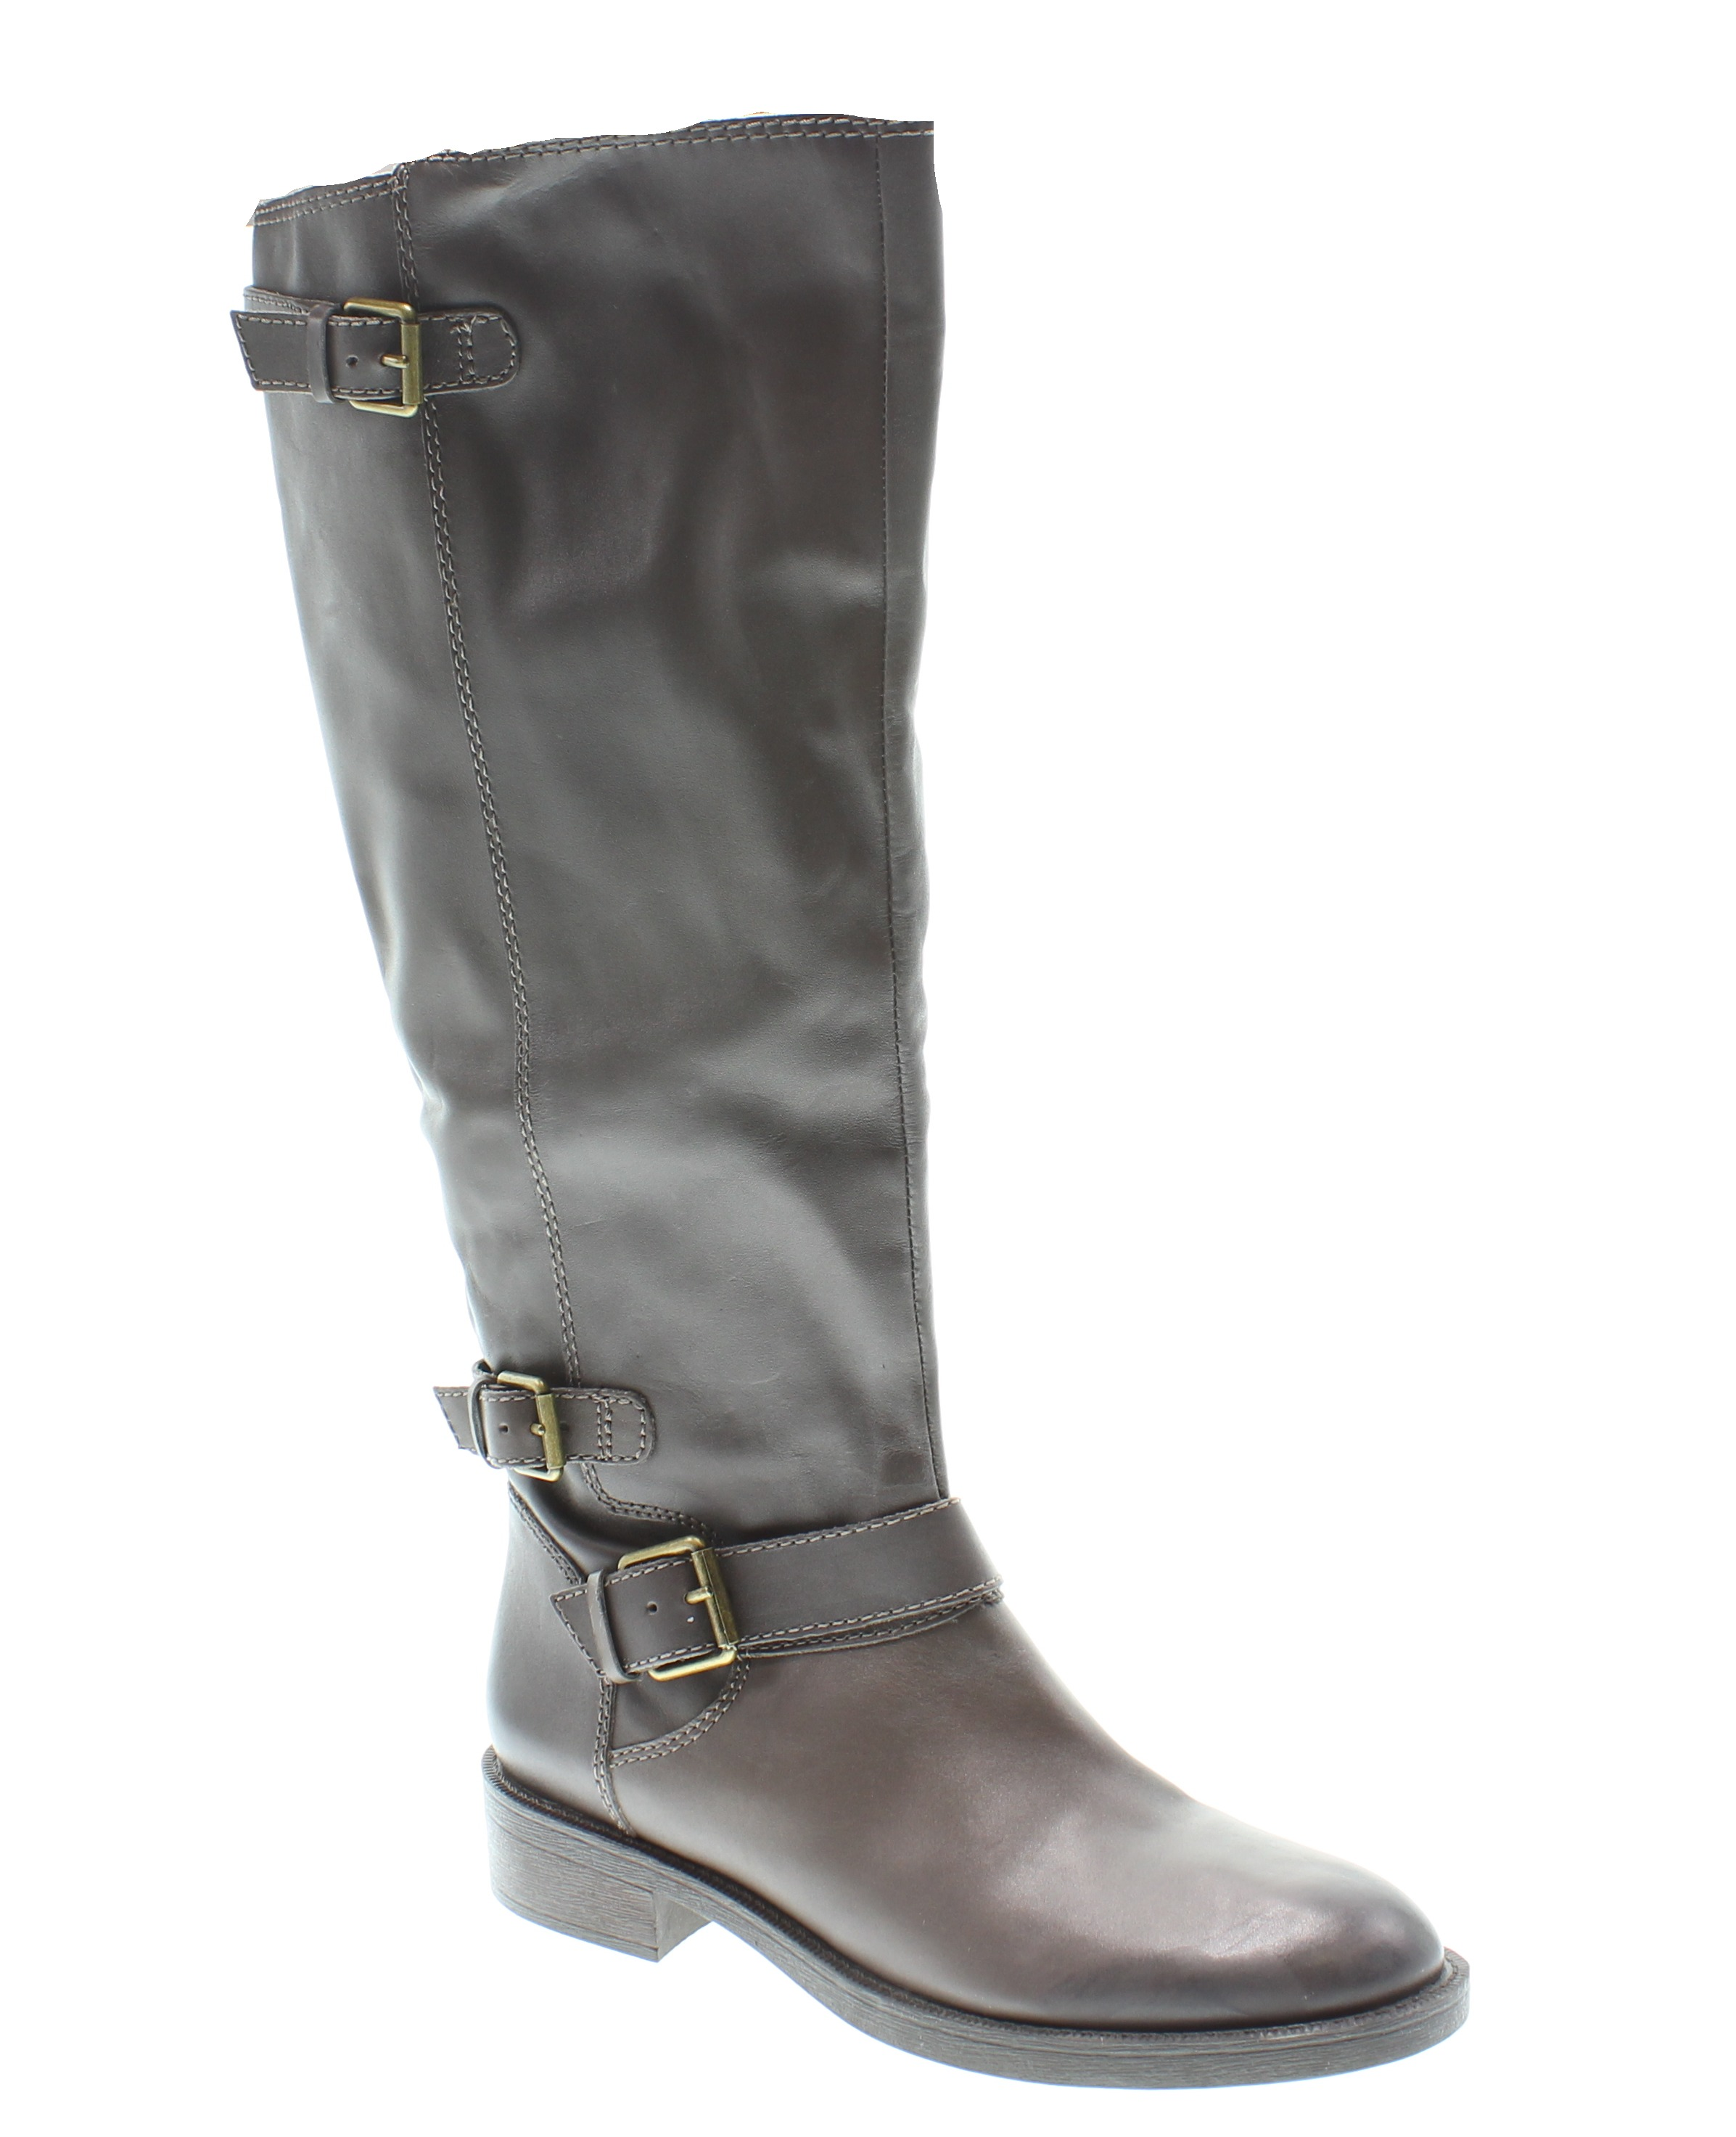 enzo angiolini new gray shoes wide calf 9 5m knee high